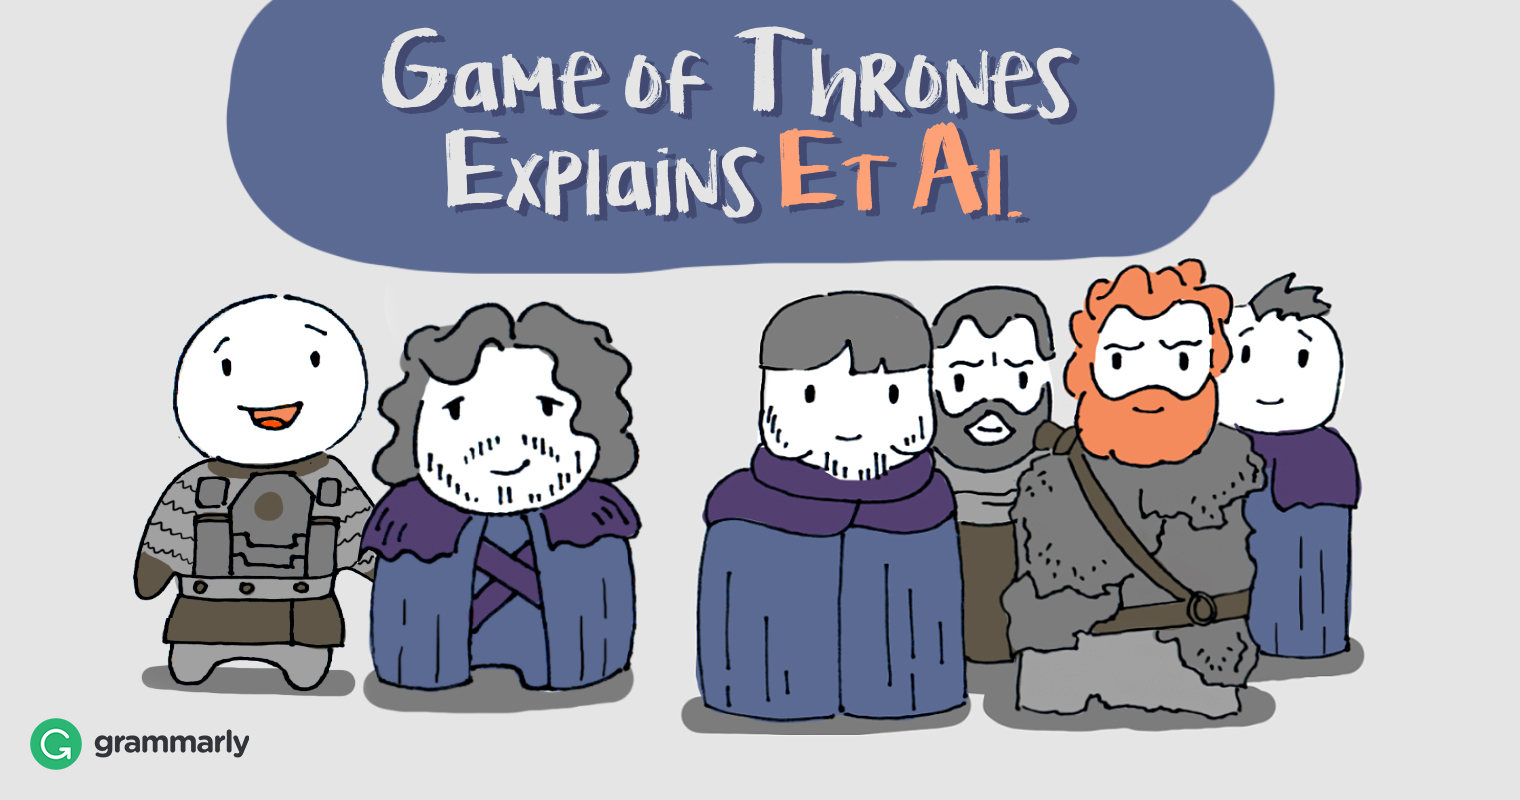 Et Al Explanation With Game Of Thrones Image